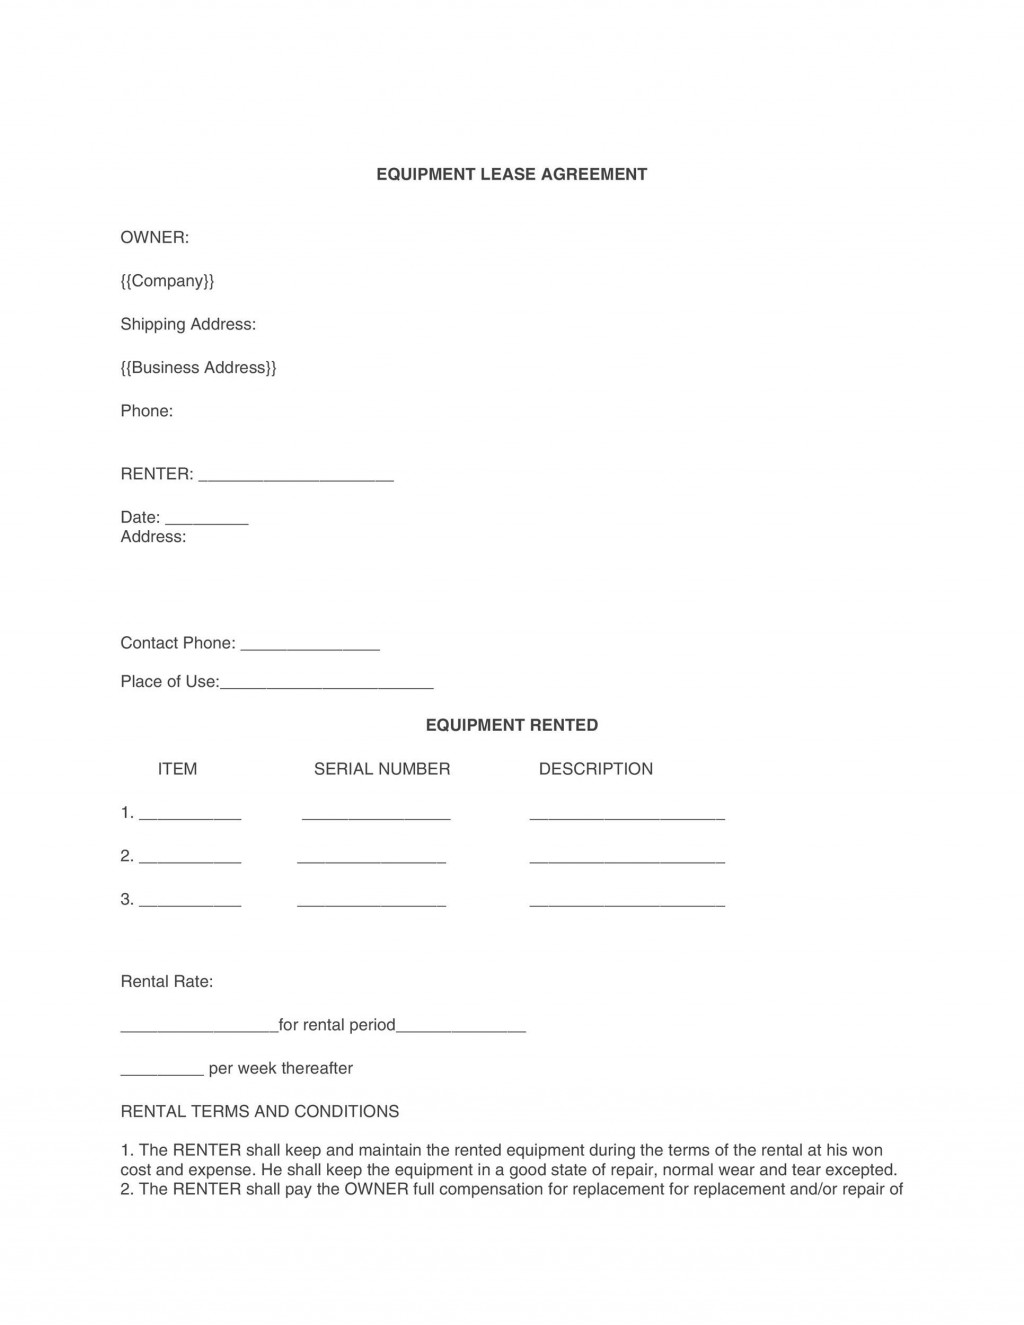 008 Remarkable Equipment Lease Contract Template Free Example  Agreement WordLarge